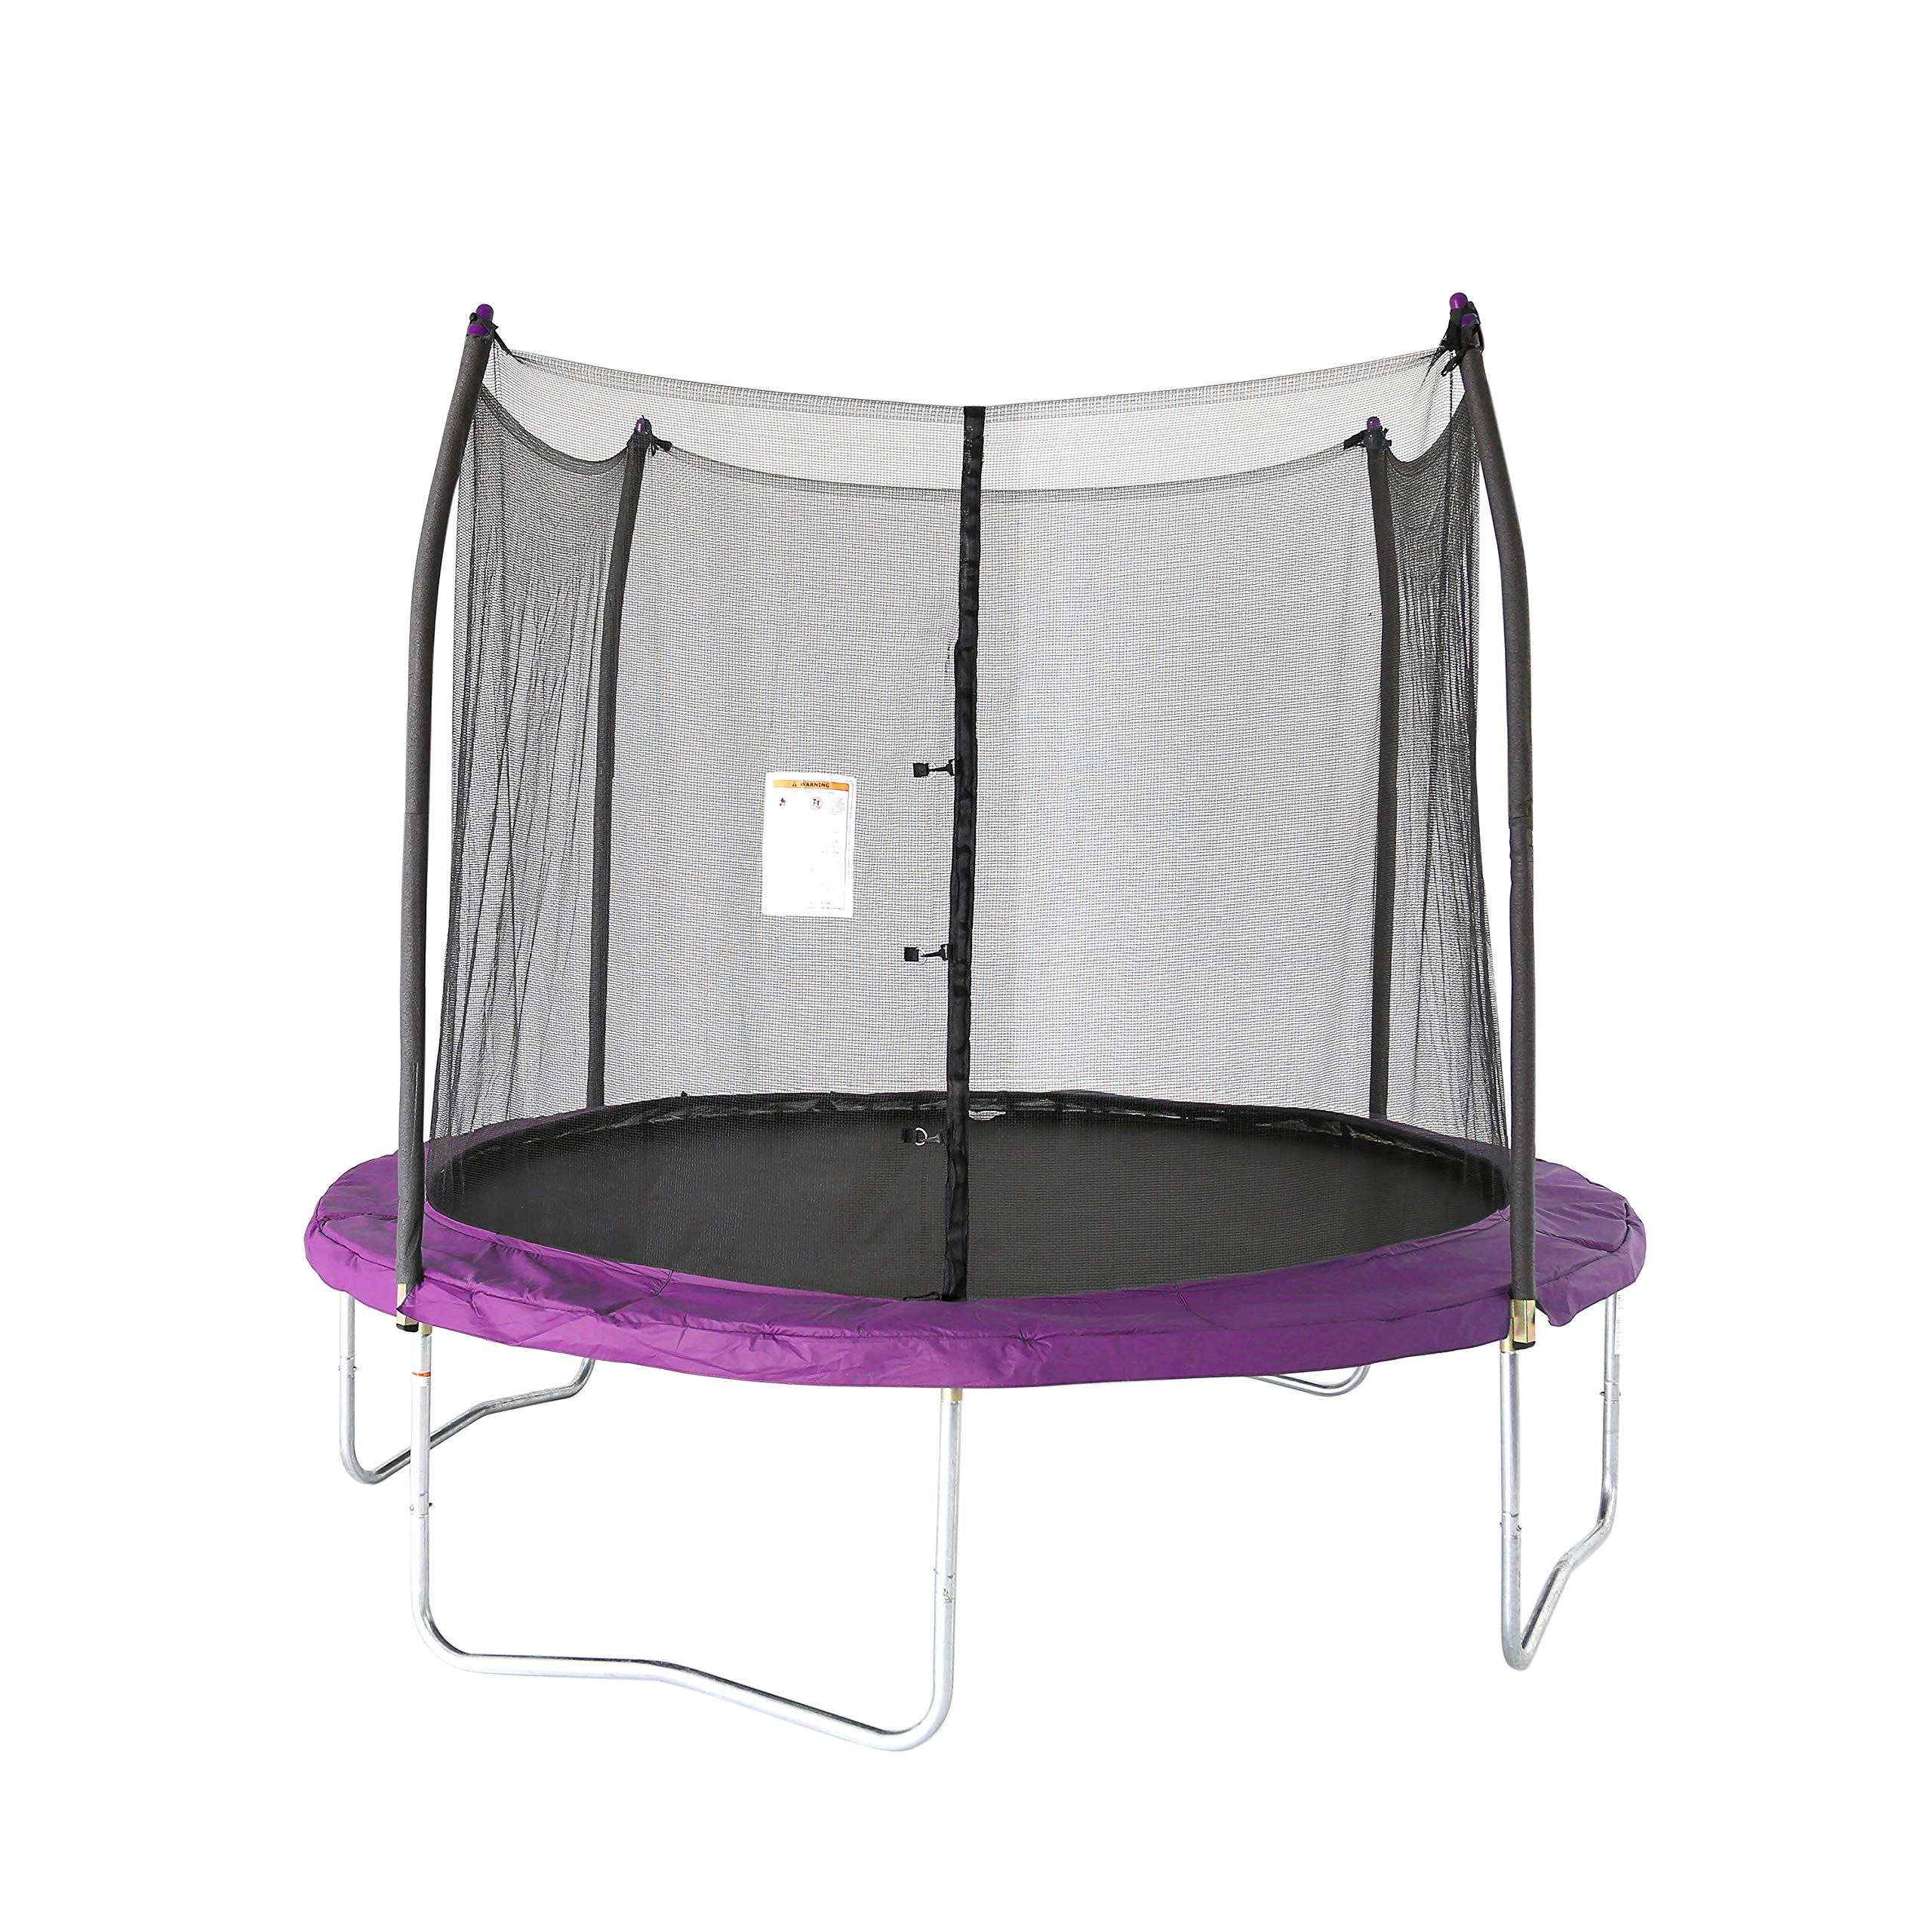 Skywalker Trampolines 10 -Foot Round Trampoline and Enclosure with spring, Purple